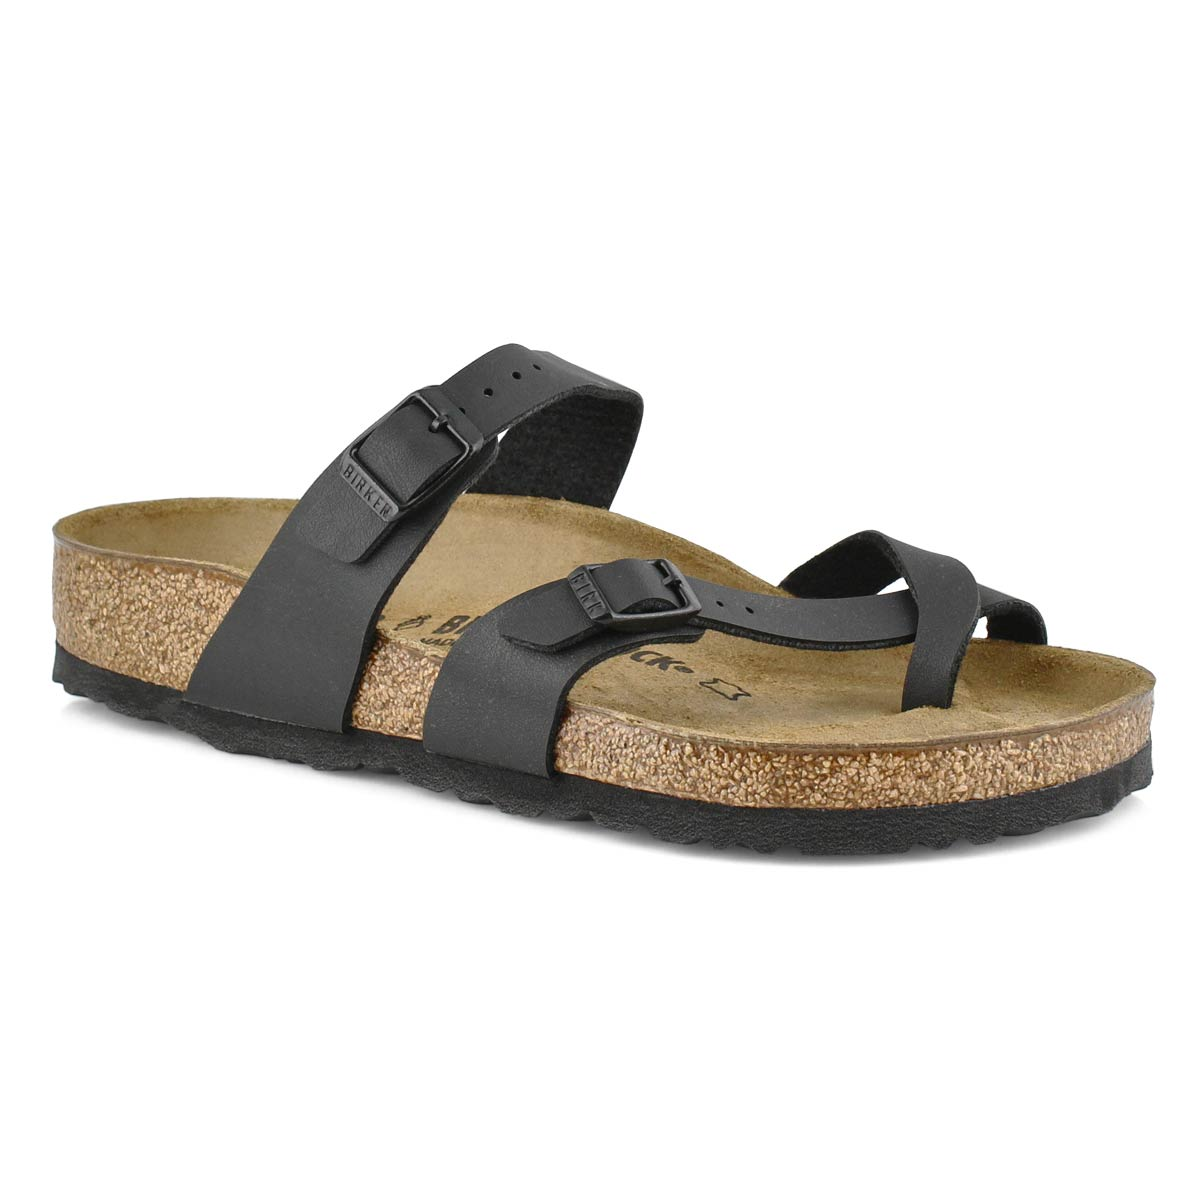 Womens MAYARI black adjustable toe loop sandals